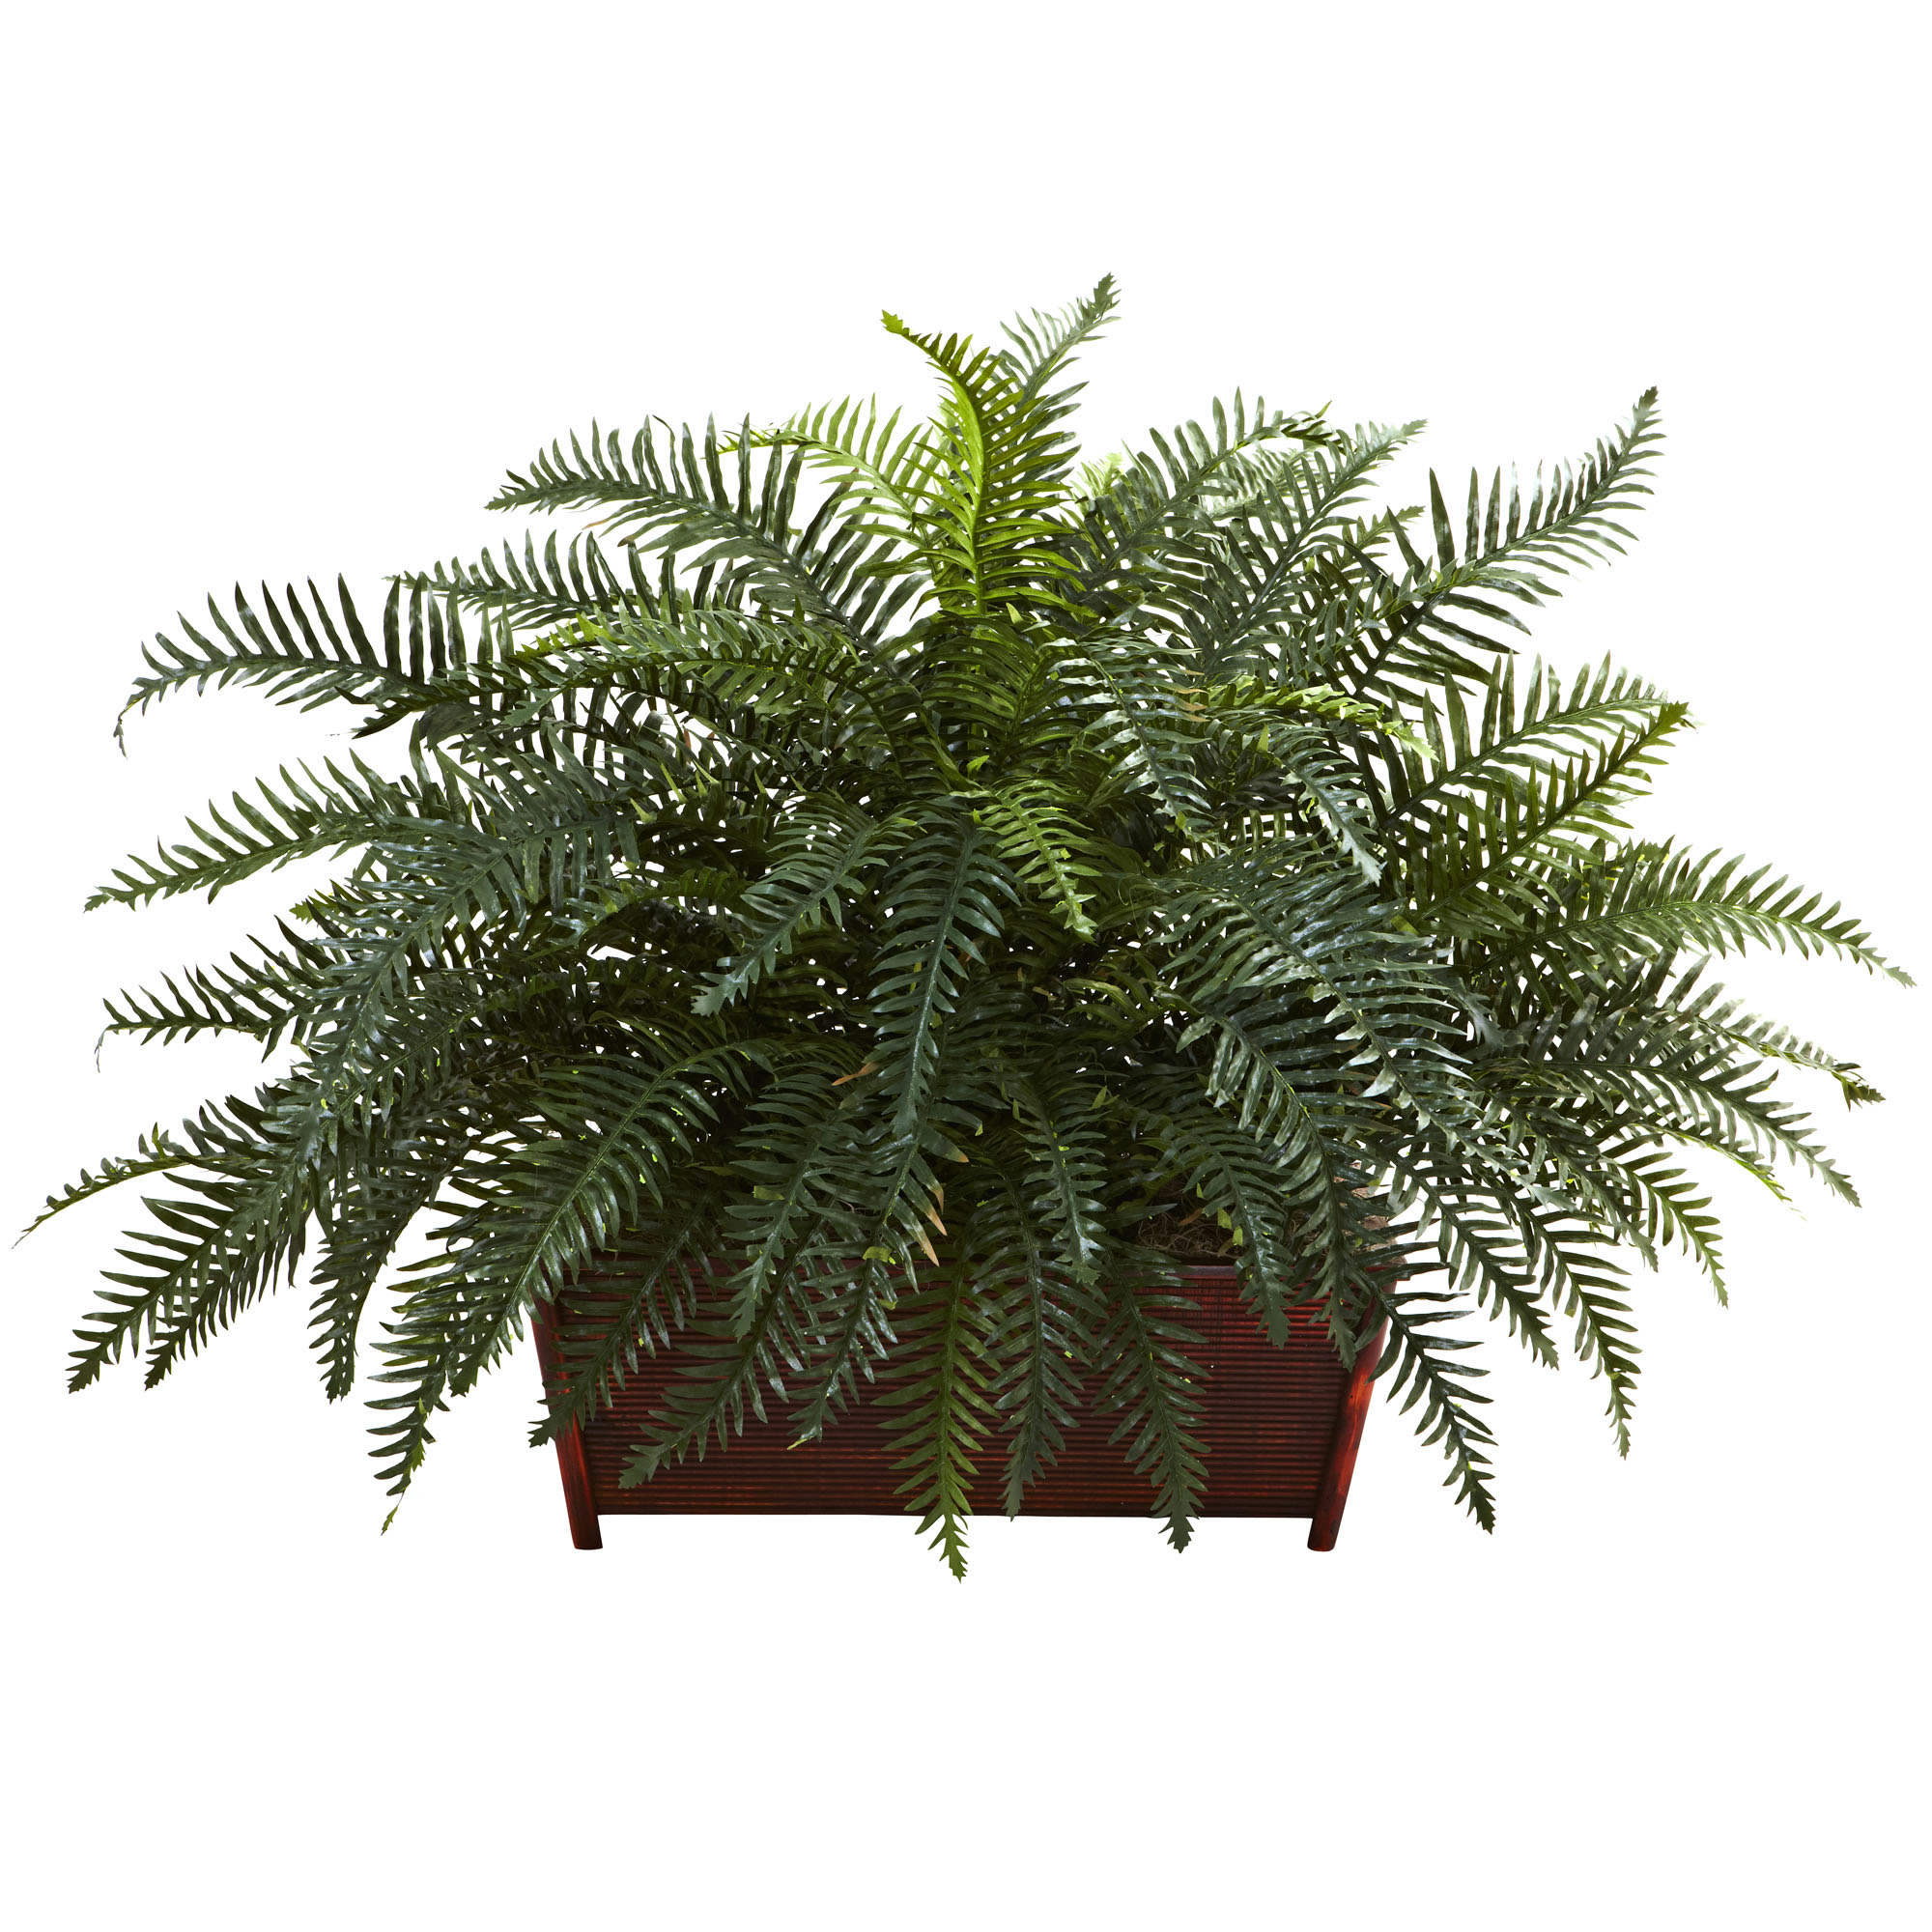 Decorative Indoor Trees 30 Inch Indoor Tropical Garden Arrangement In Decorative Wood